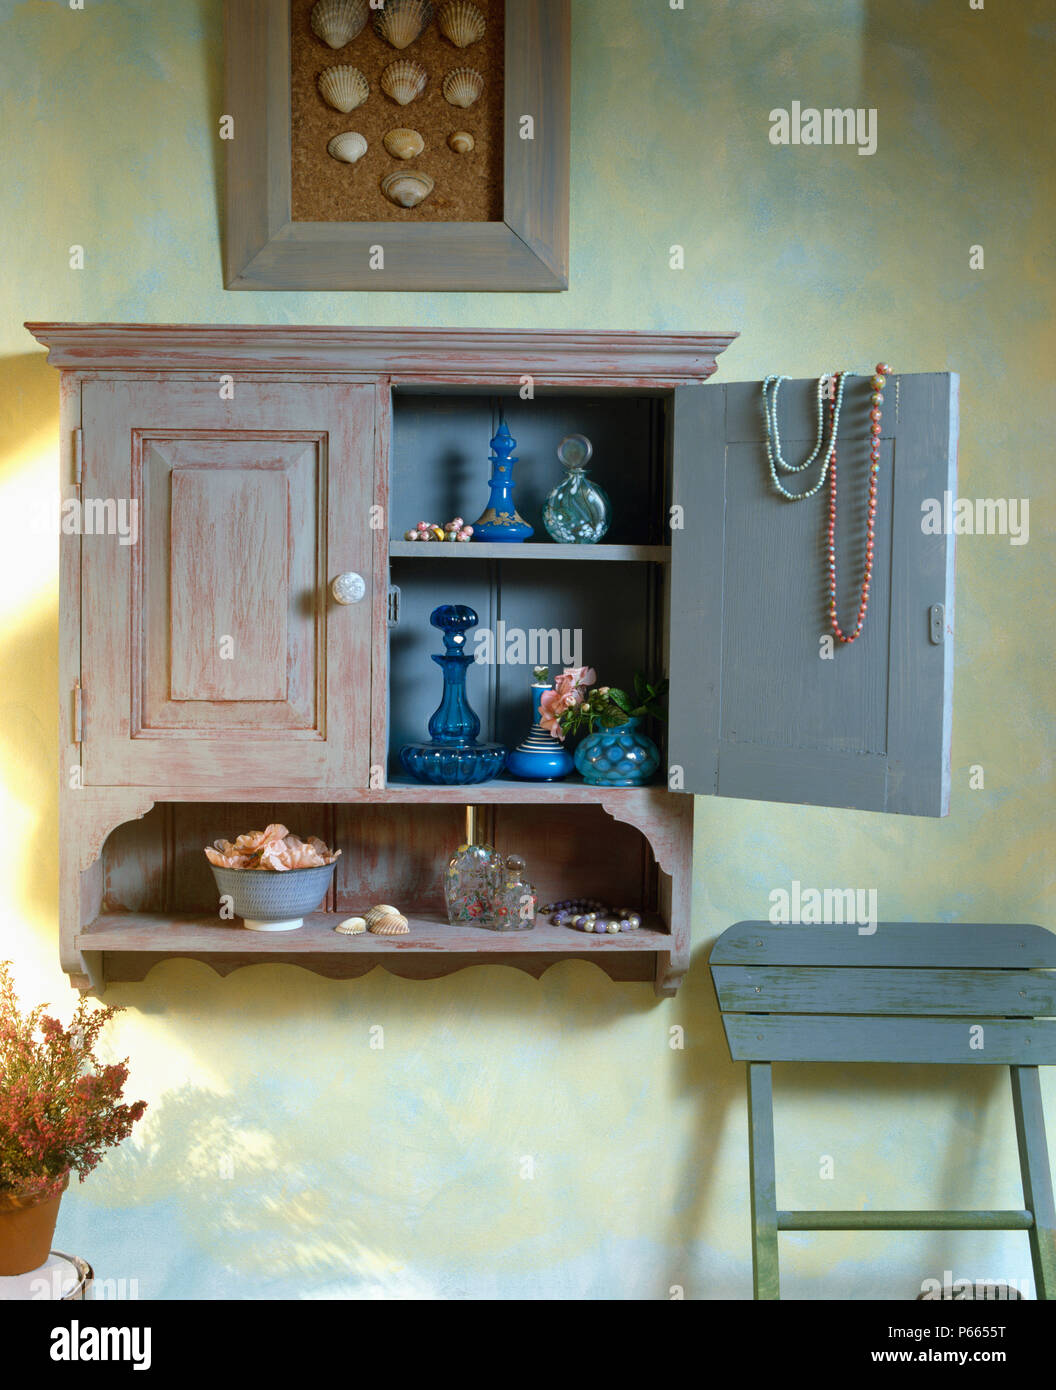 Close Up Of Wall Cupboard With Hand Painted Distressed Paint Effect Stock Photo Alamy